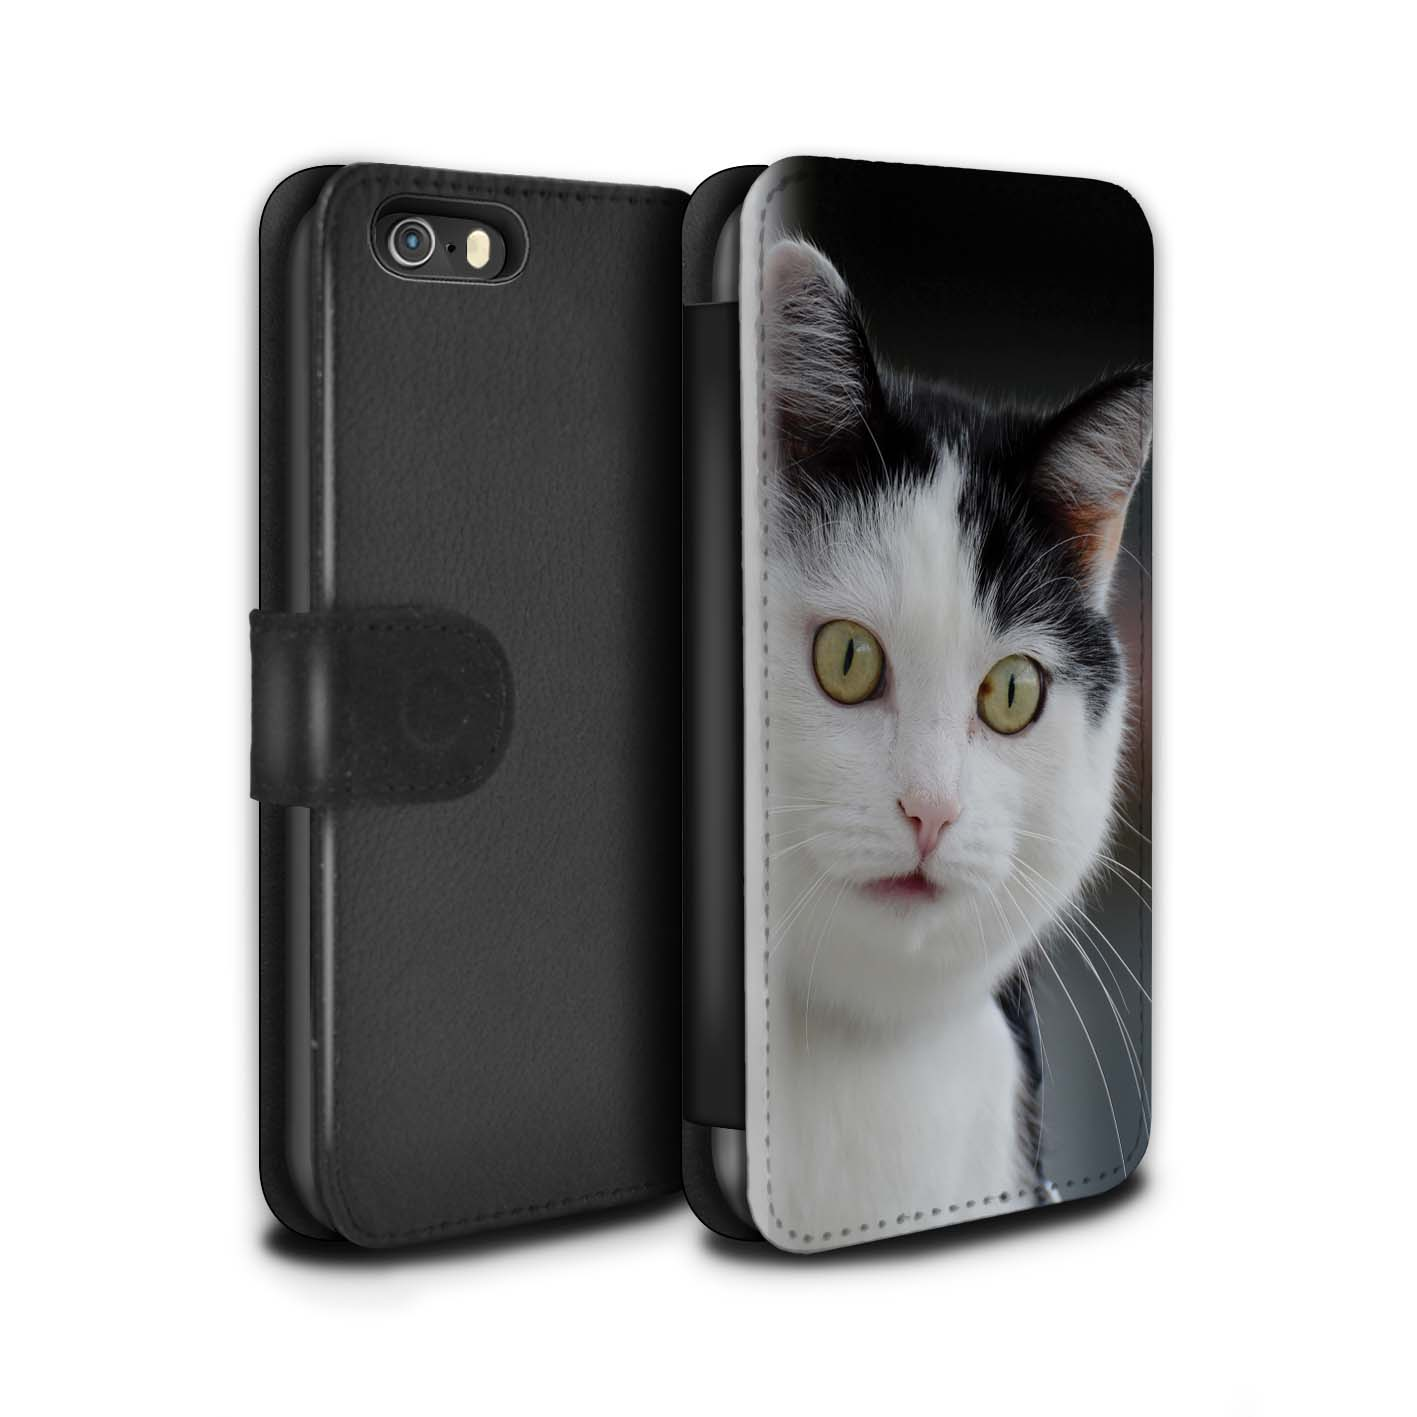 STUFF4-PU-Leather-Case-Cover-Wallet-for-Apple-iPhone-SE-Funny-Animal-Meme